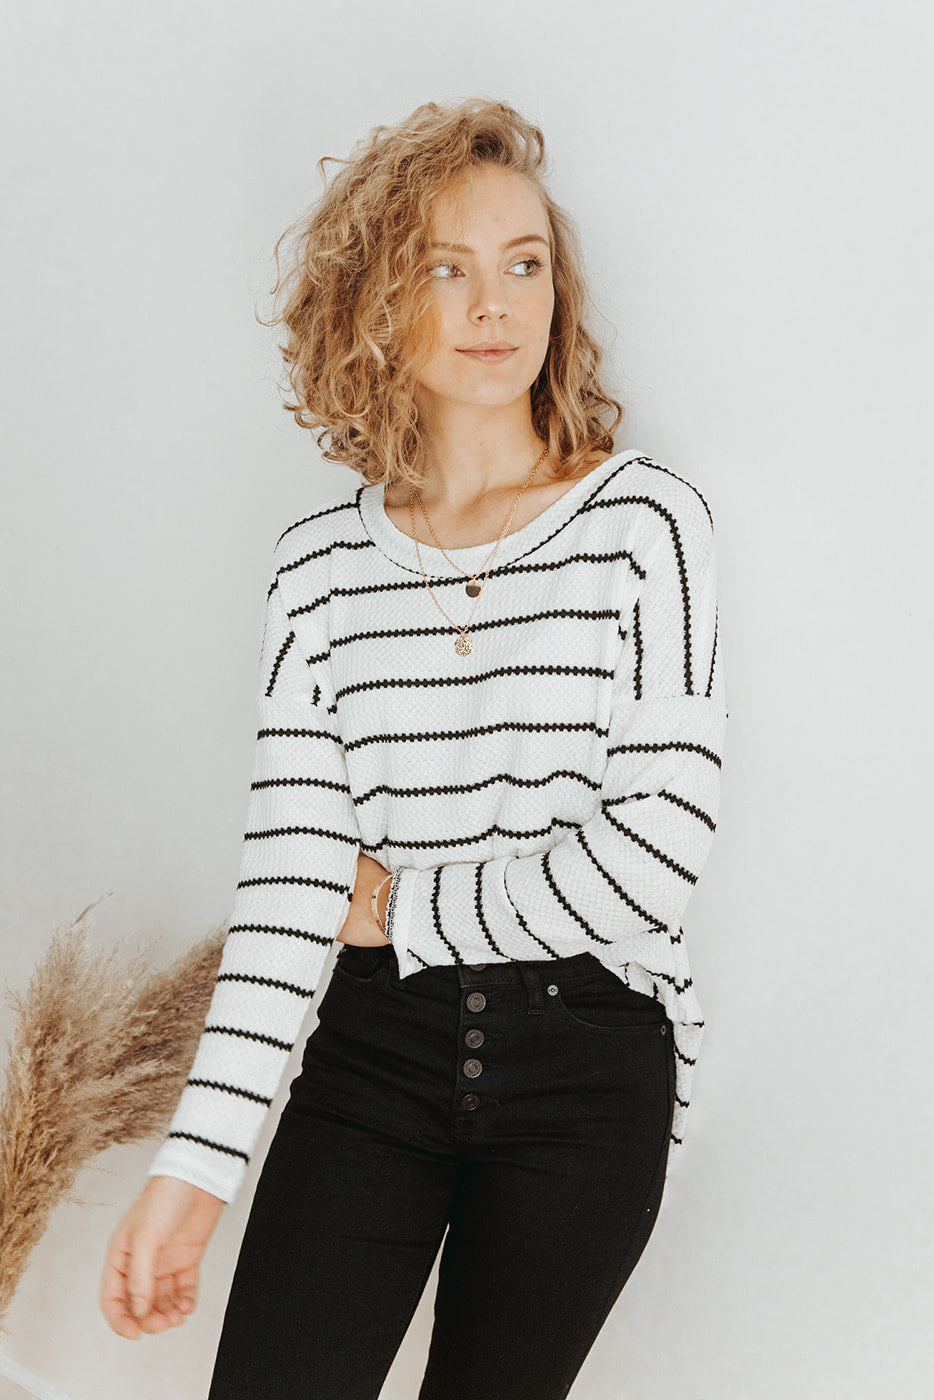 The Everett Striped Top